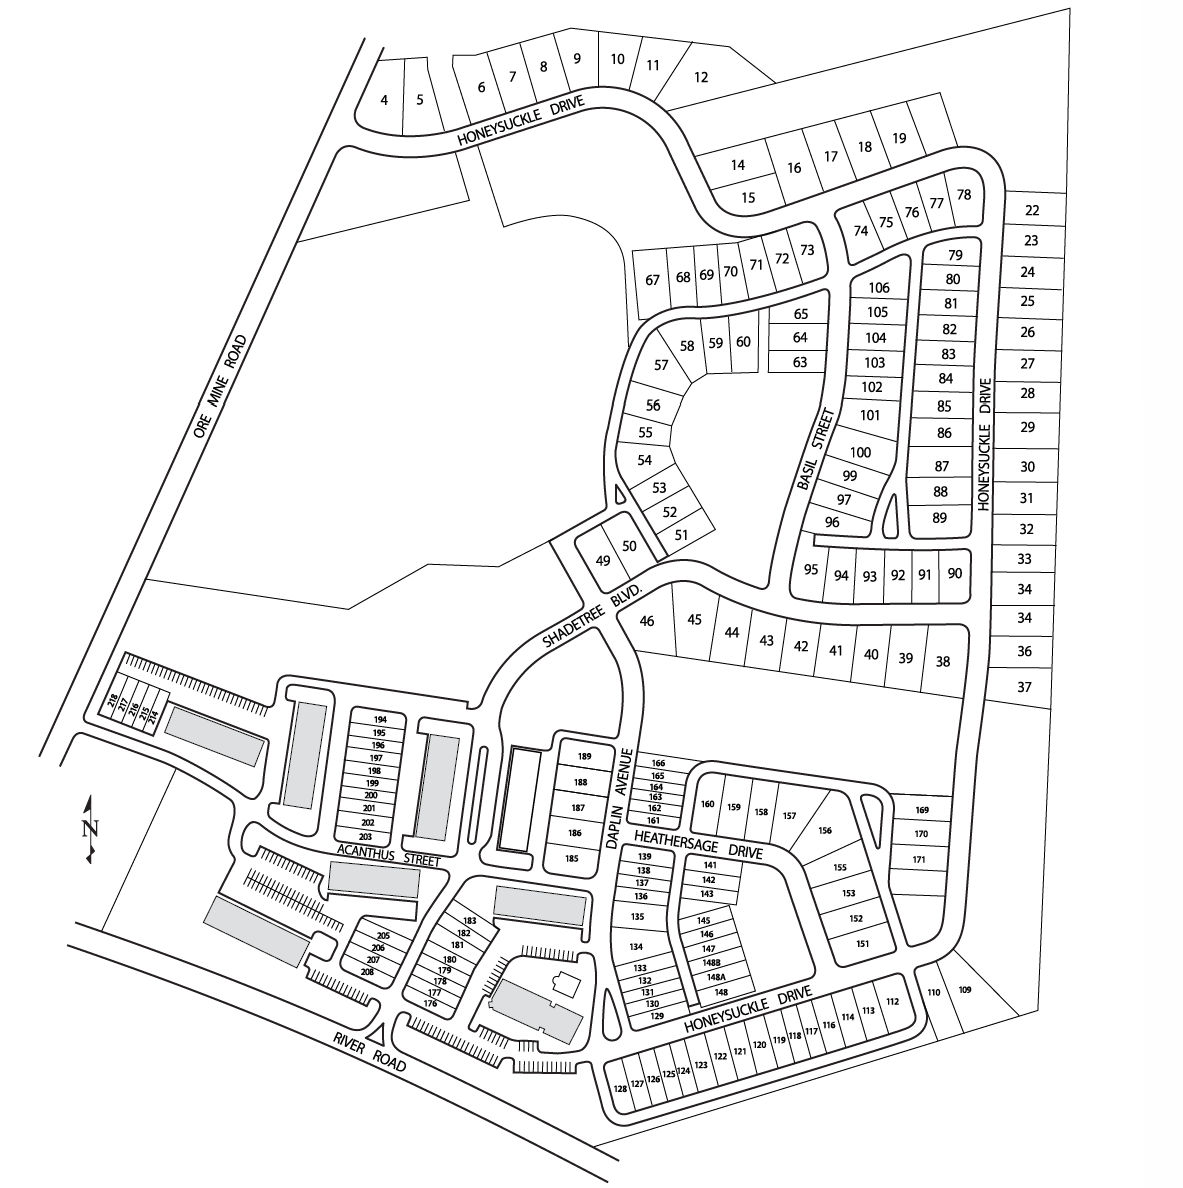 Castleton Manor Homes Lot Map Background